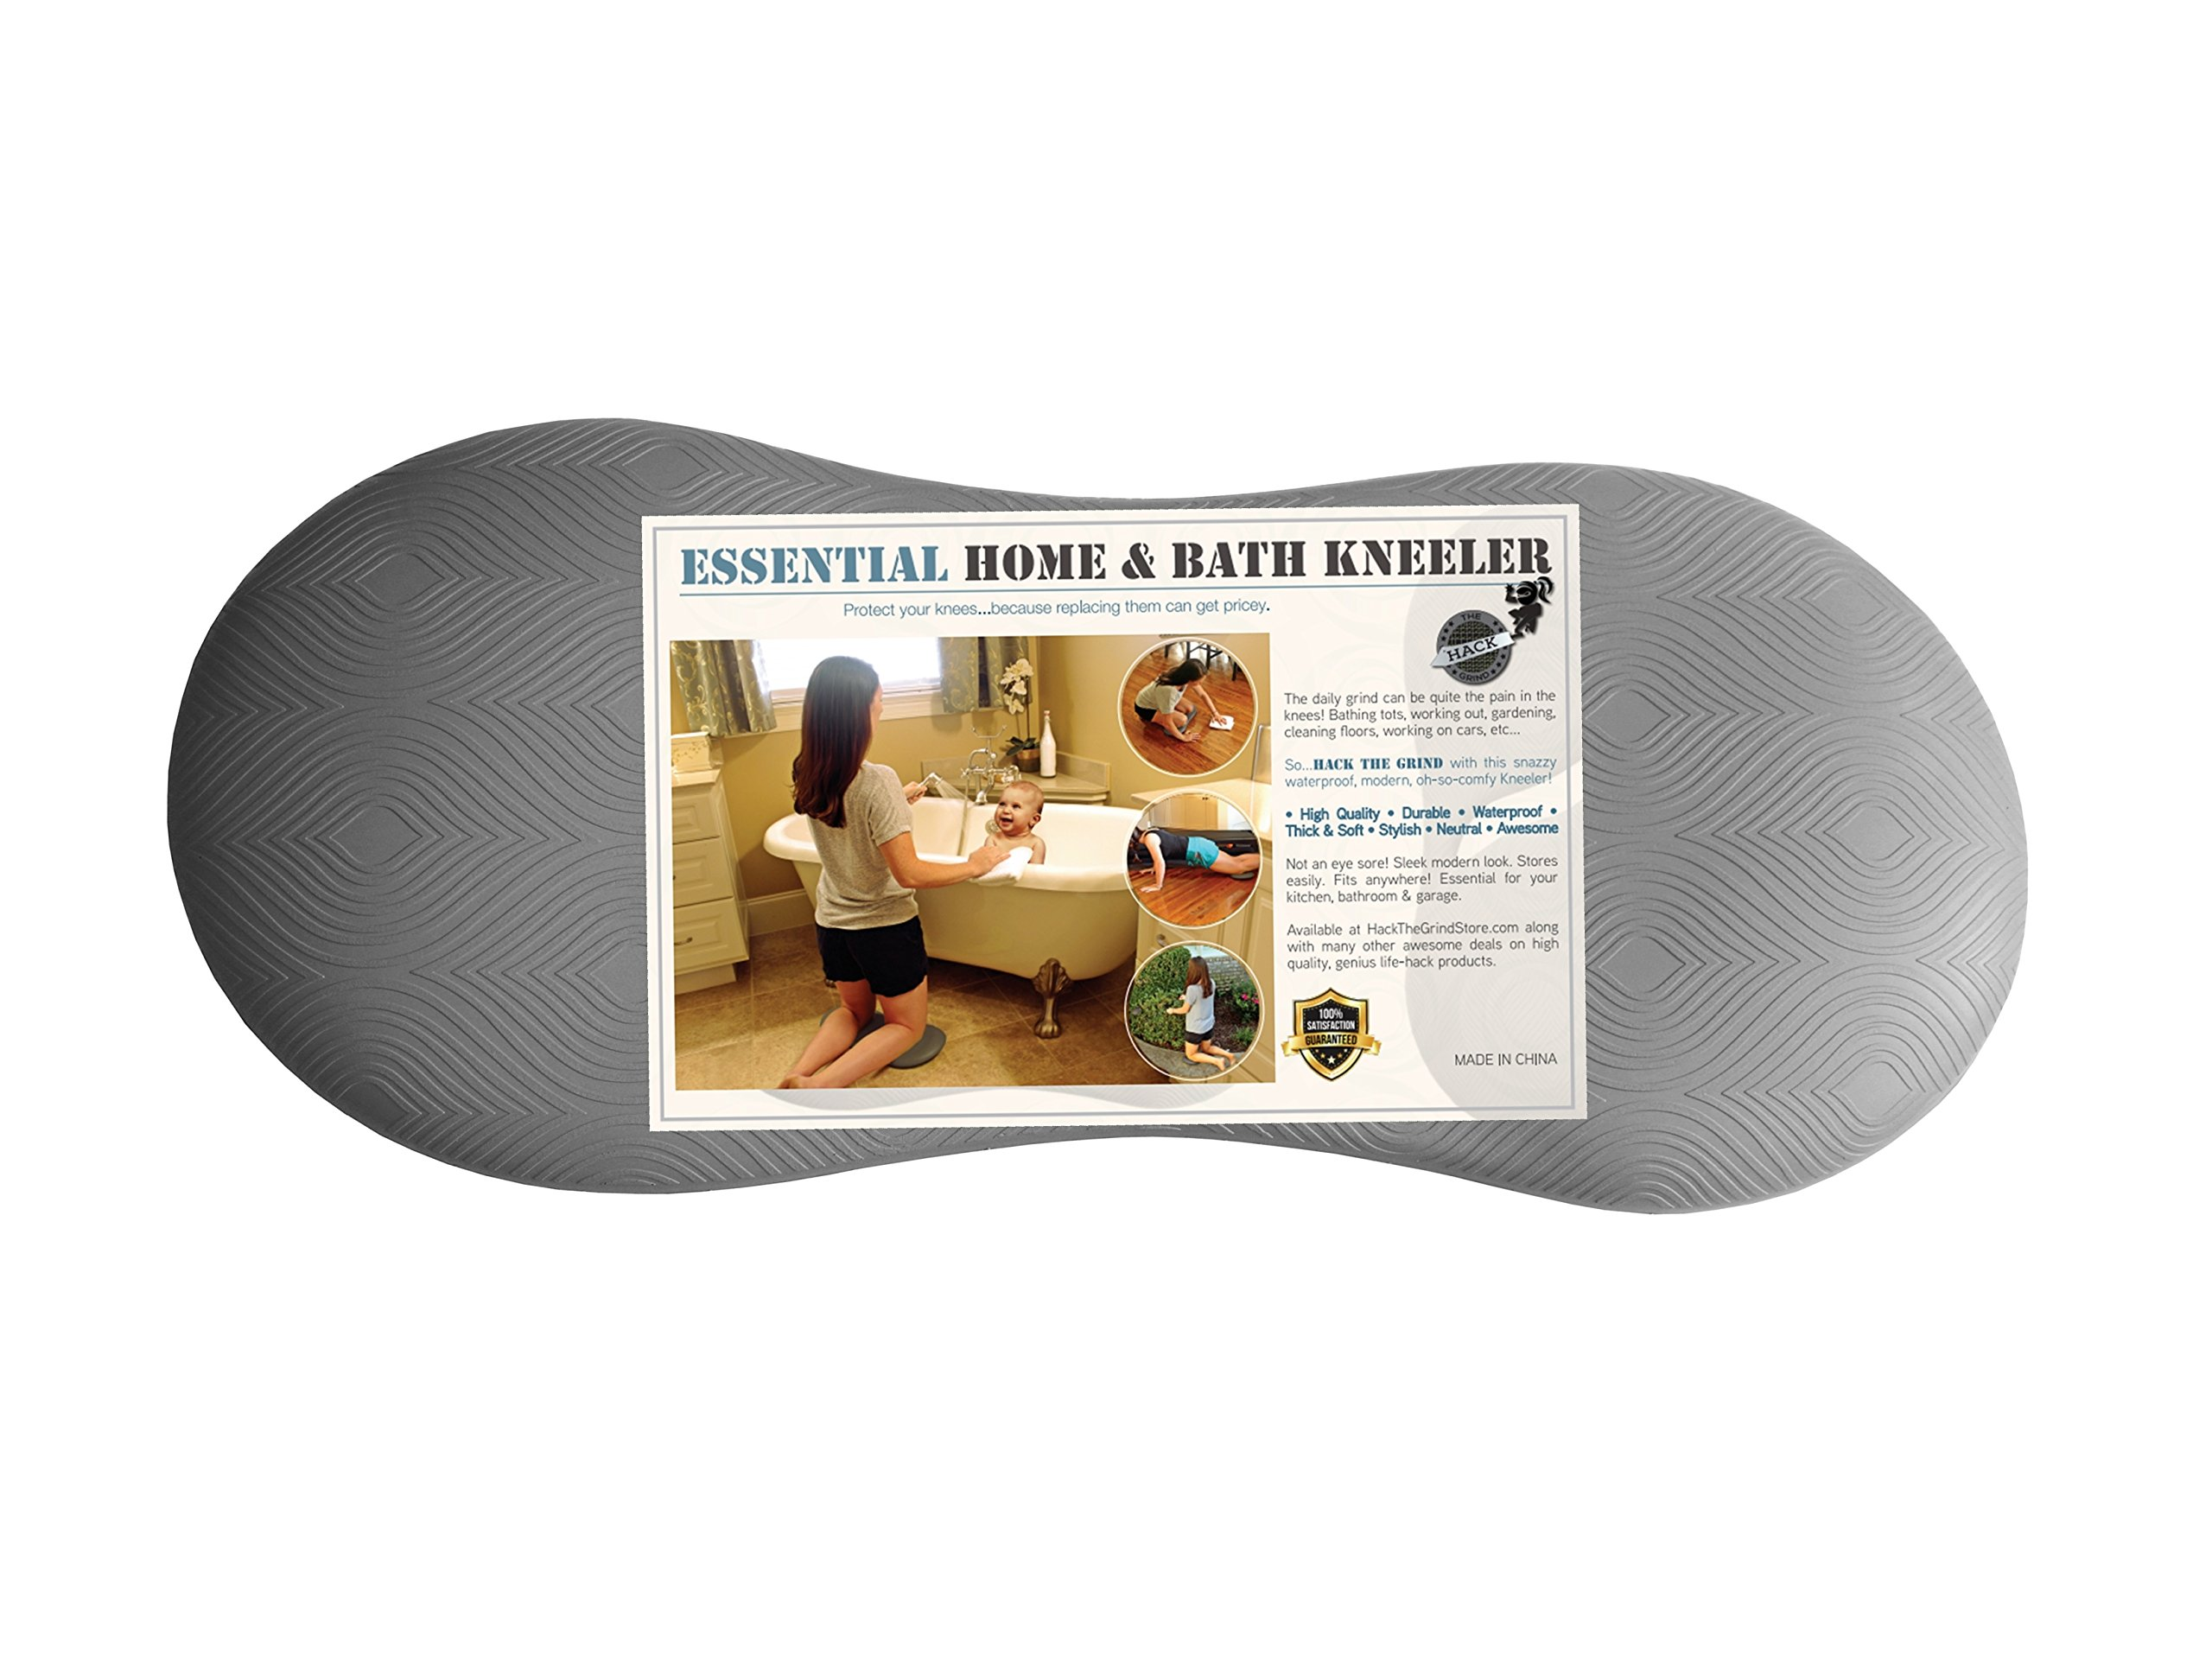 Essential Kneeler, Baby Bath Kneeler. Water-Proof! Thicker & More Durable! by Hack The Grind (Image #6)